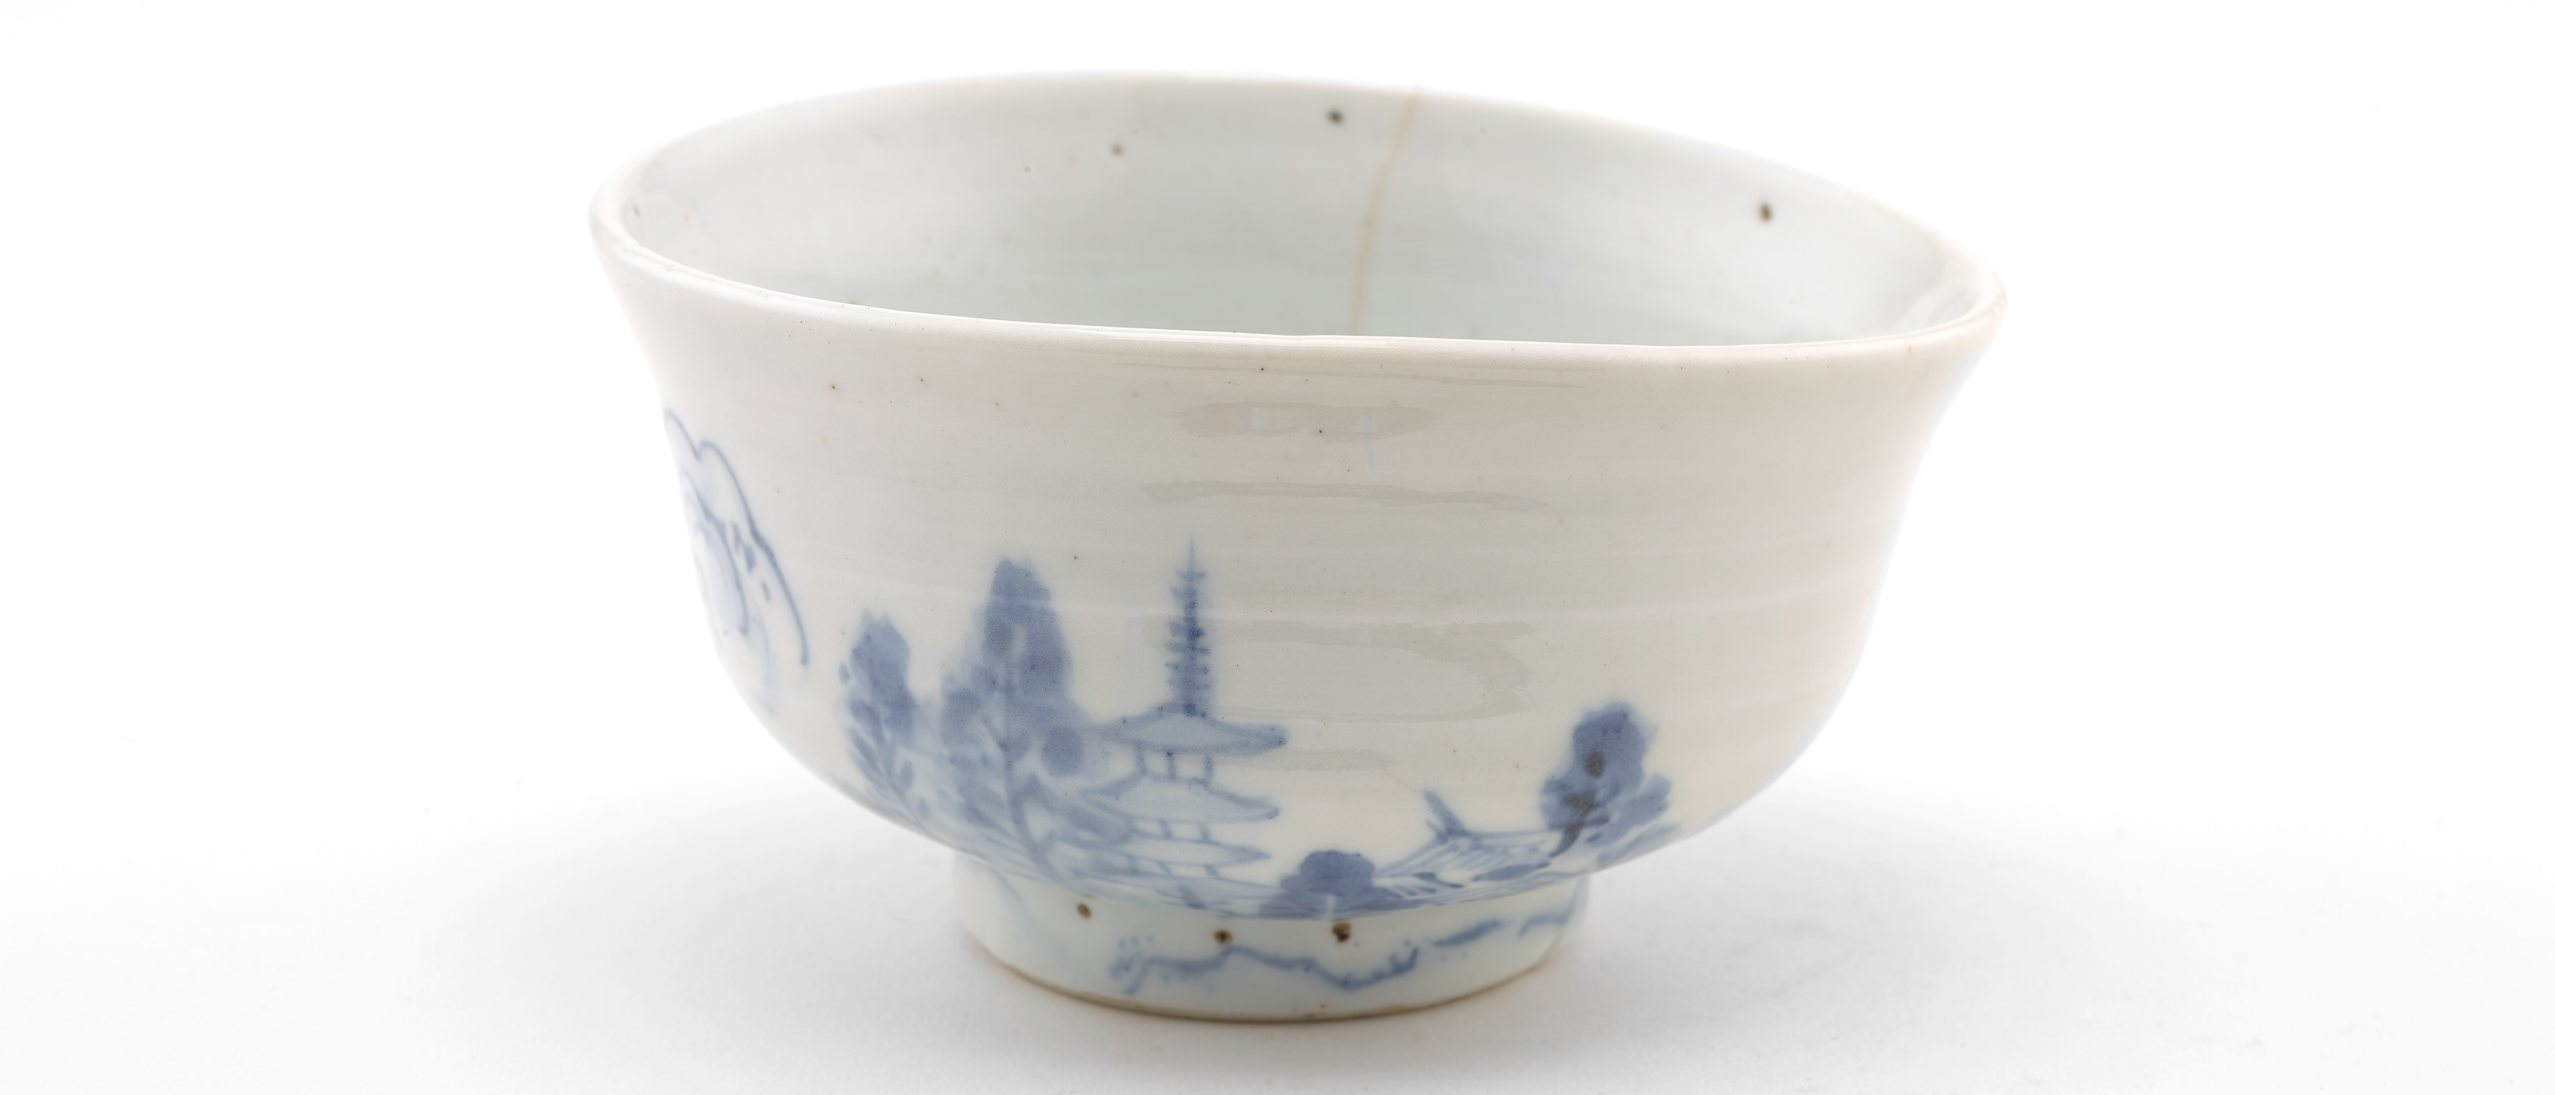 white porcelain bowl with blue design of a pagoda and landscape